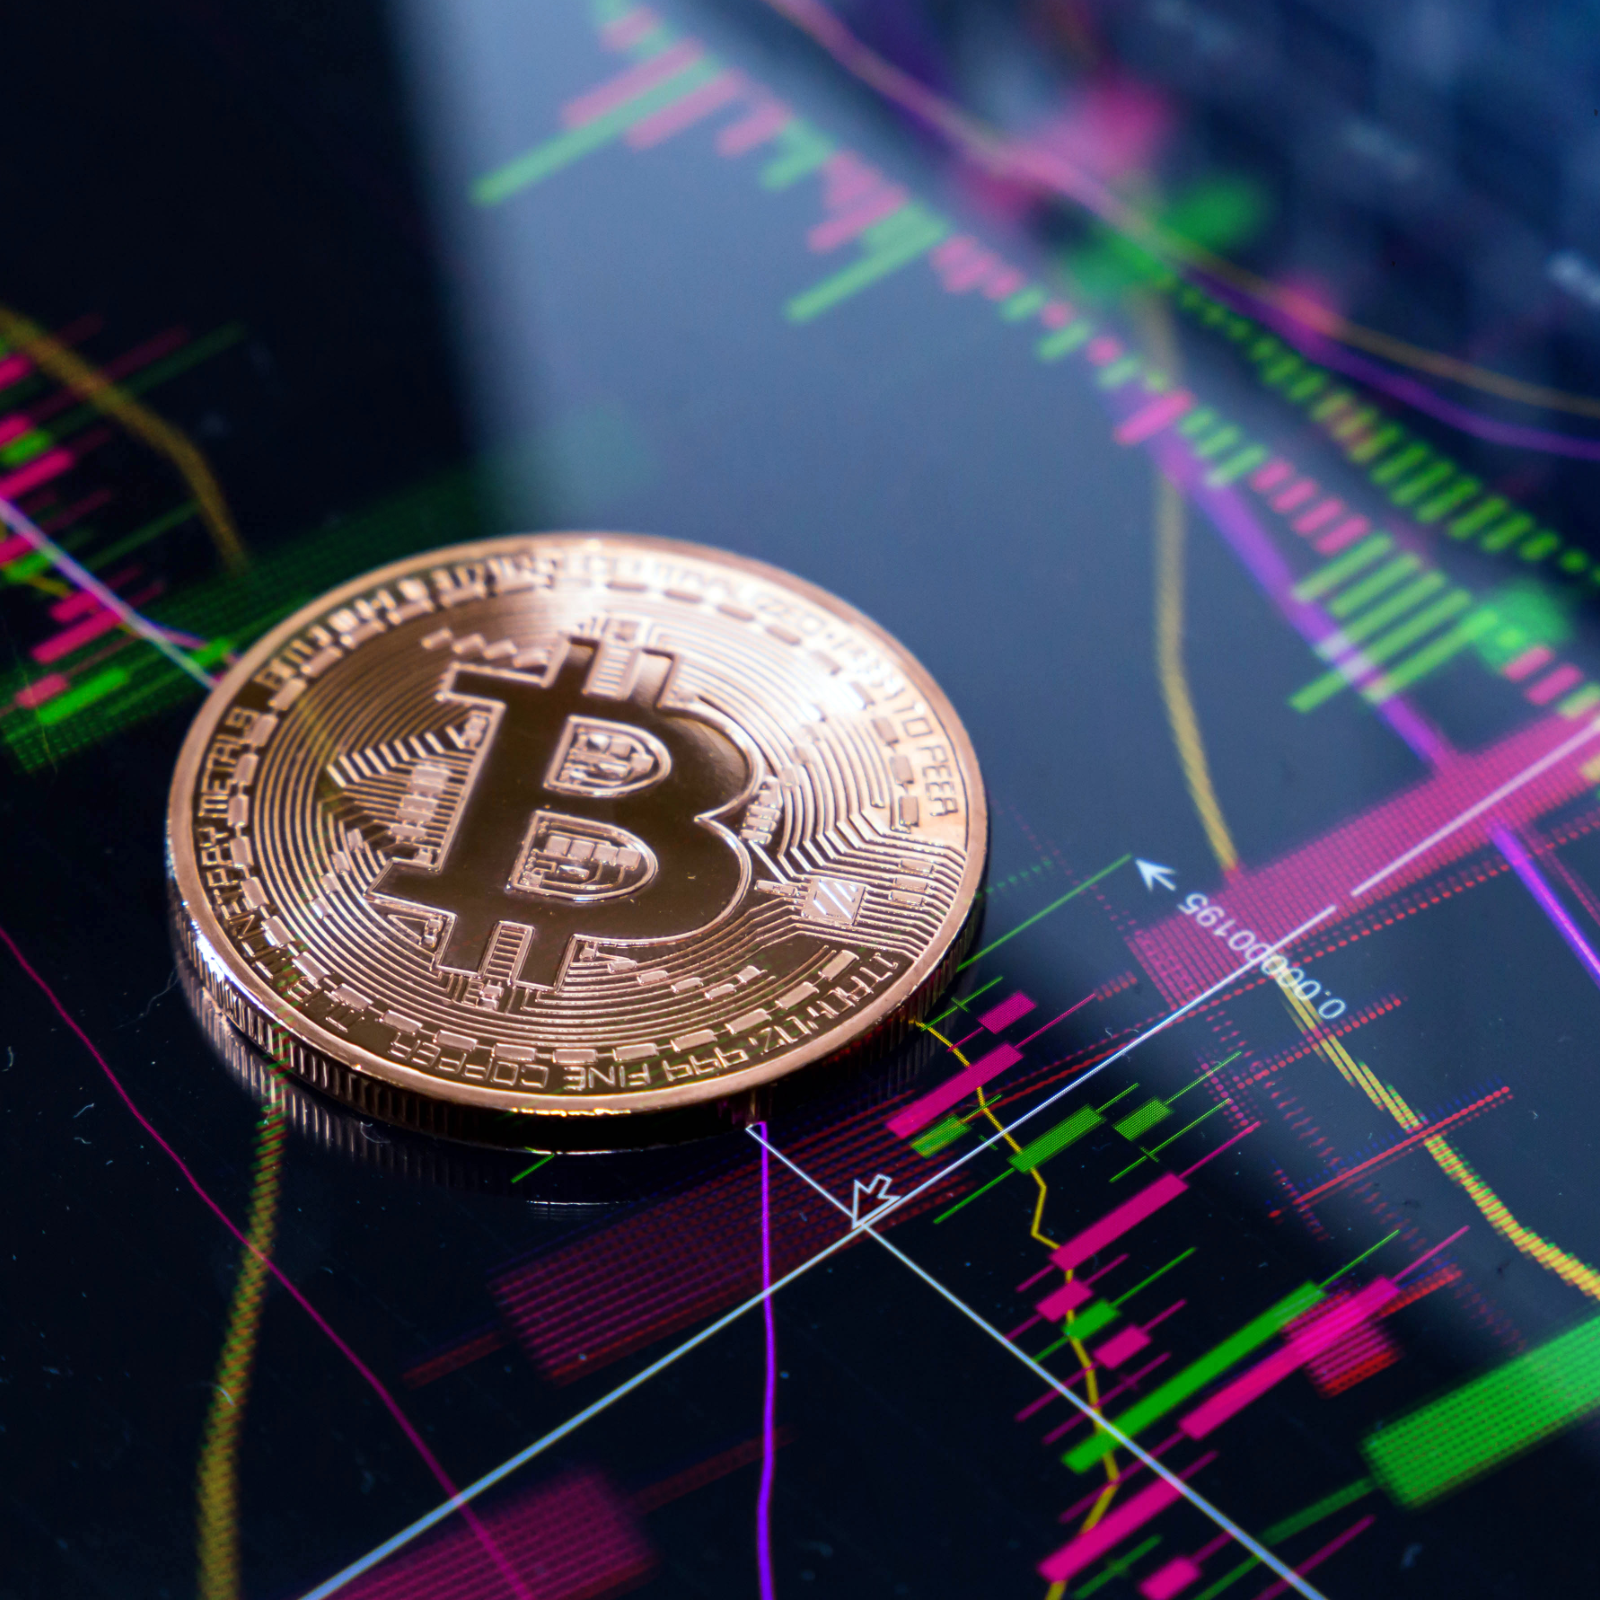 Bakkt Bitcoin Futures to Start Trading in December